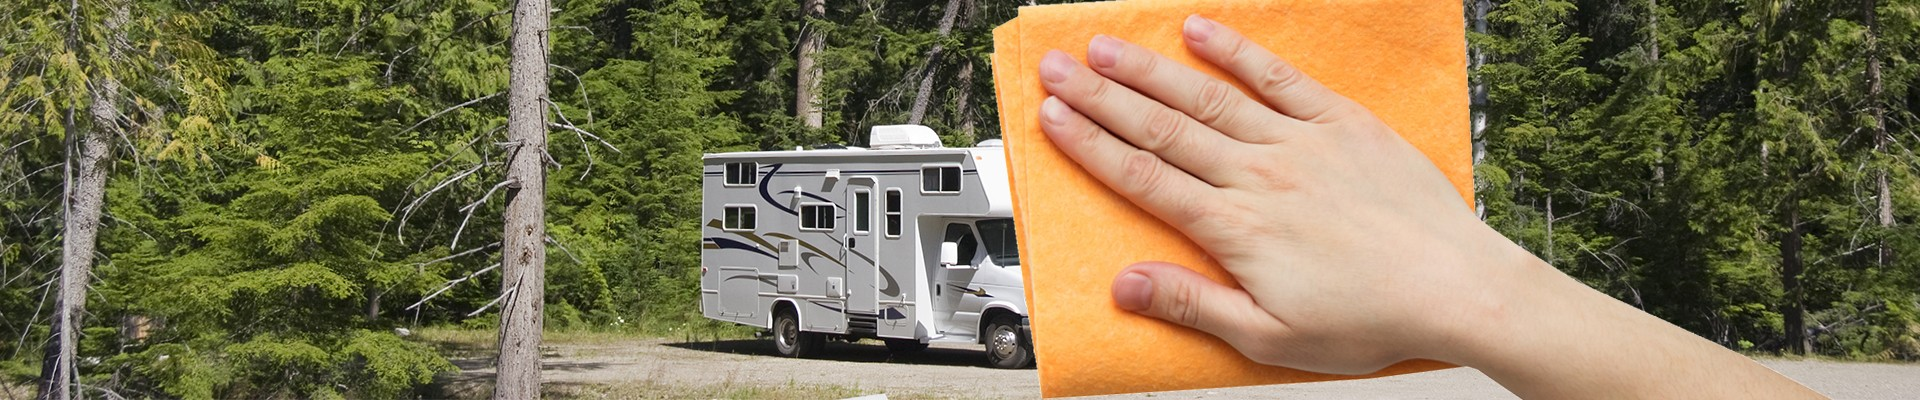 motorhome and hand with cleaning rag